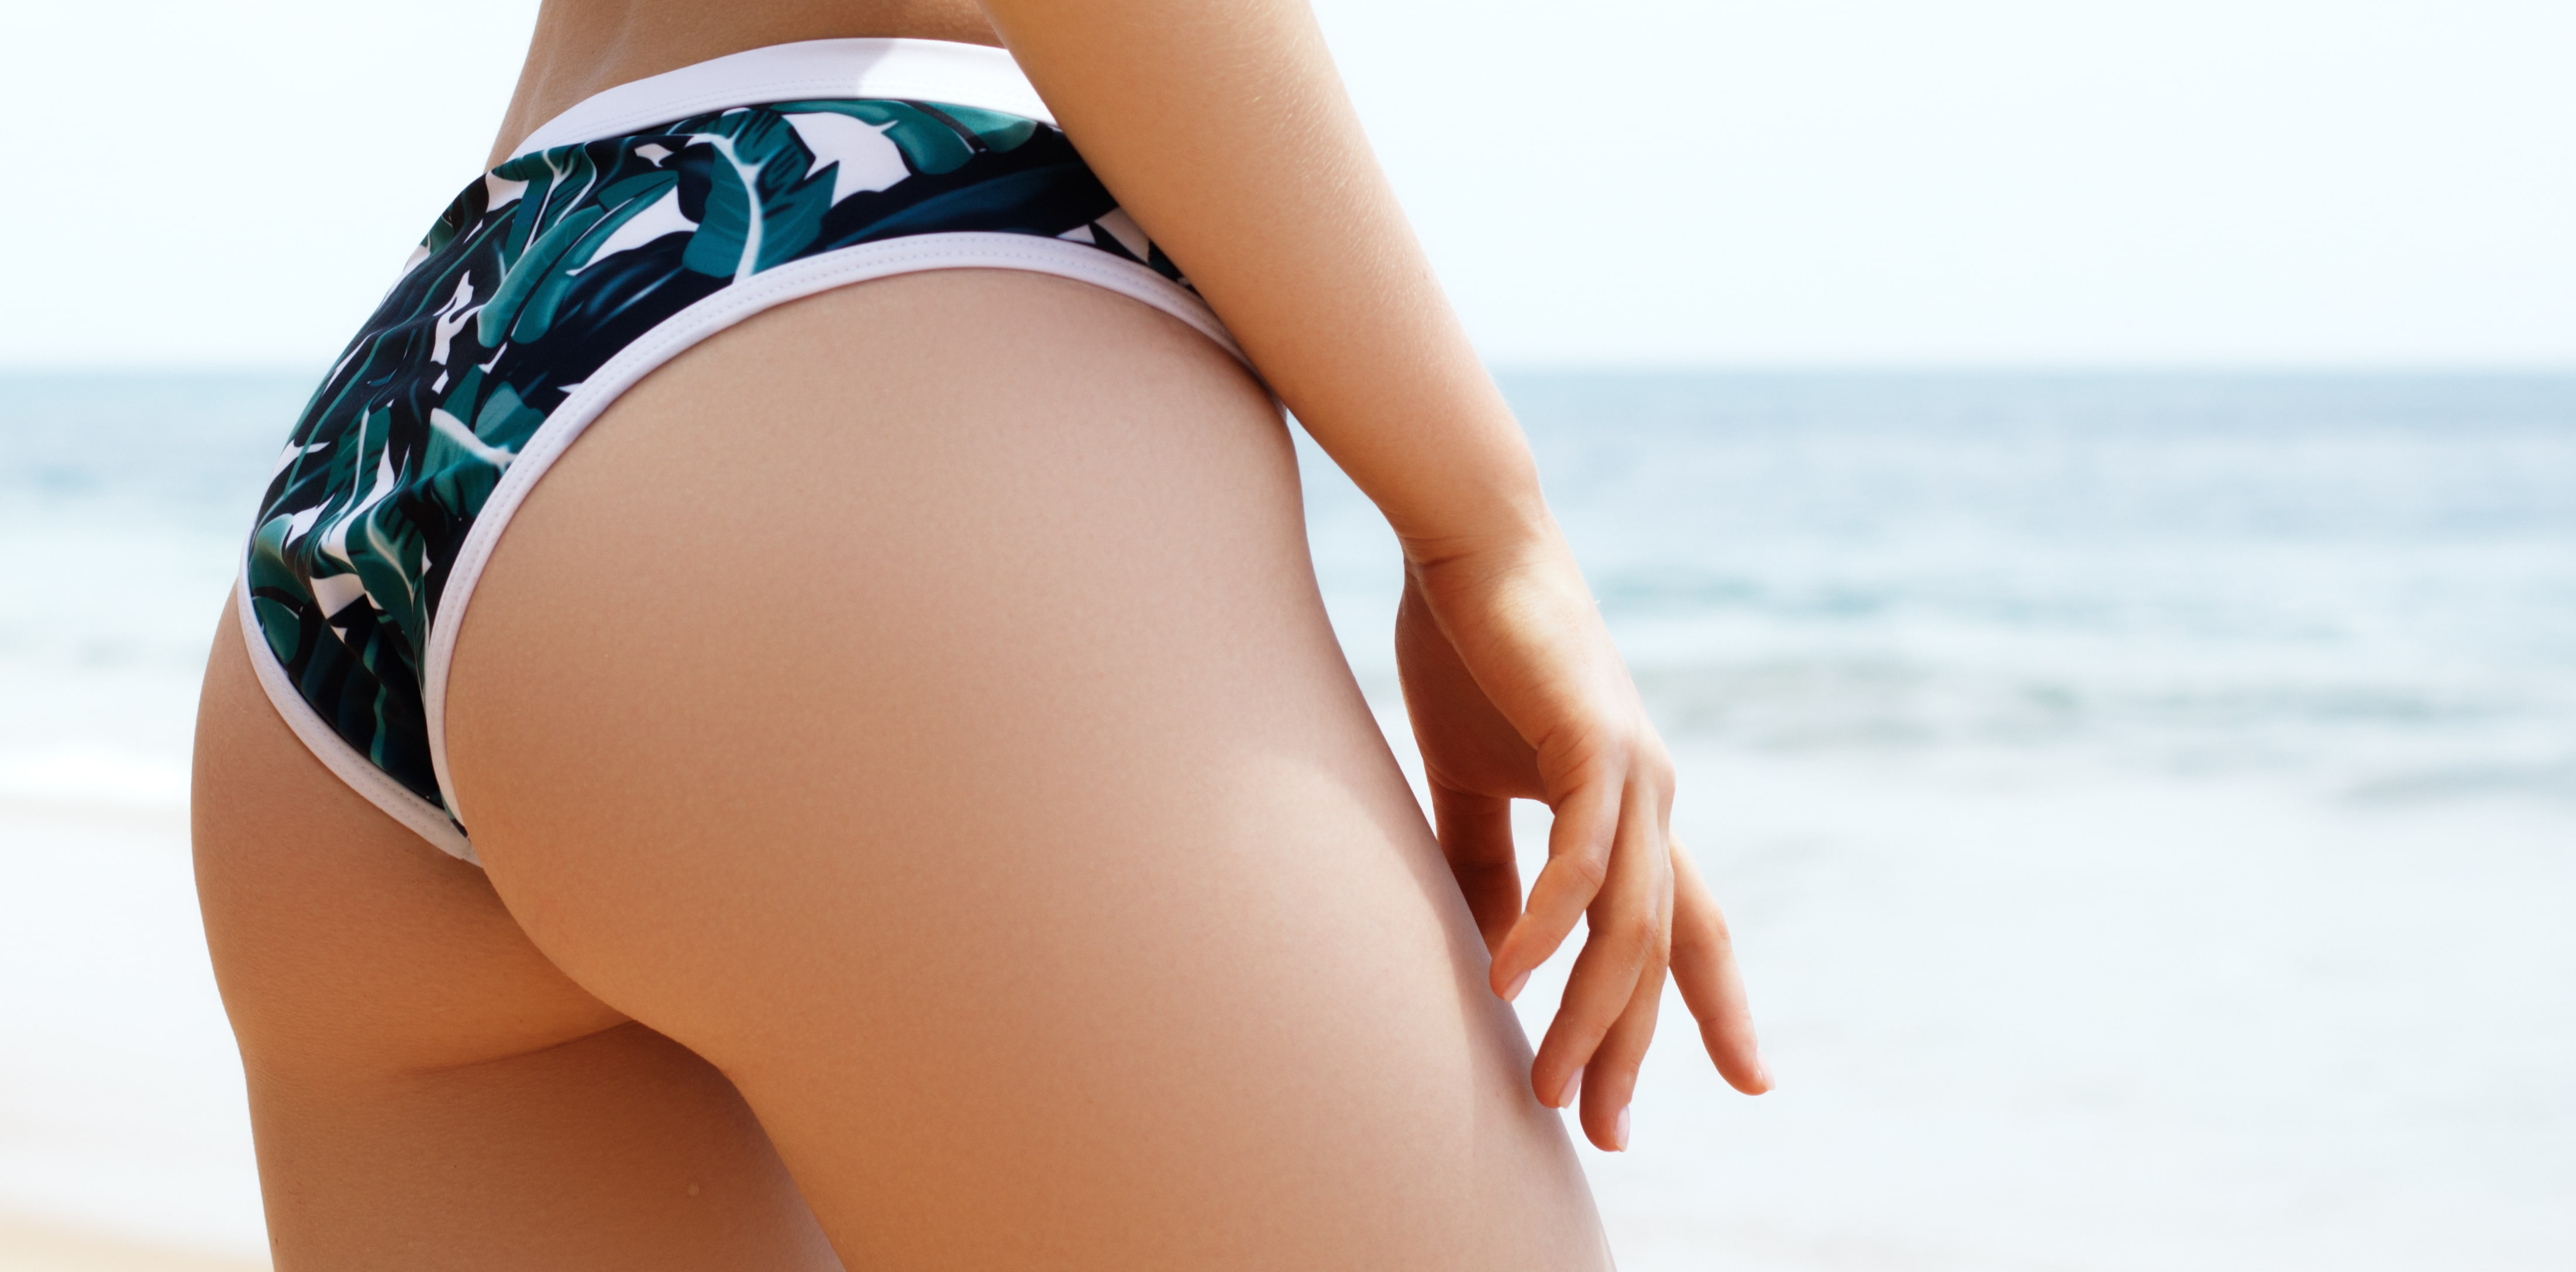 Are butt implants and Brazilian butt lift the same thing?